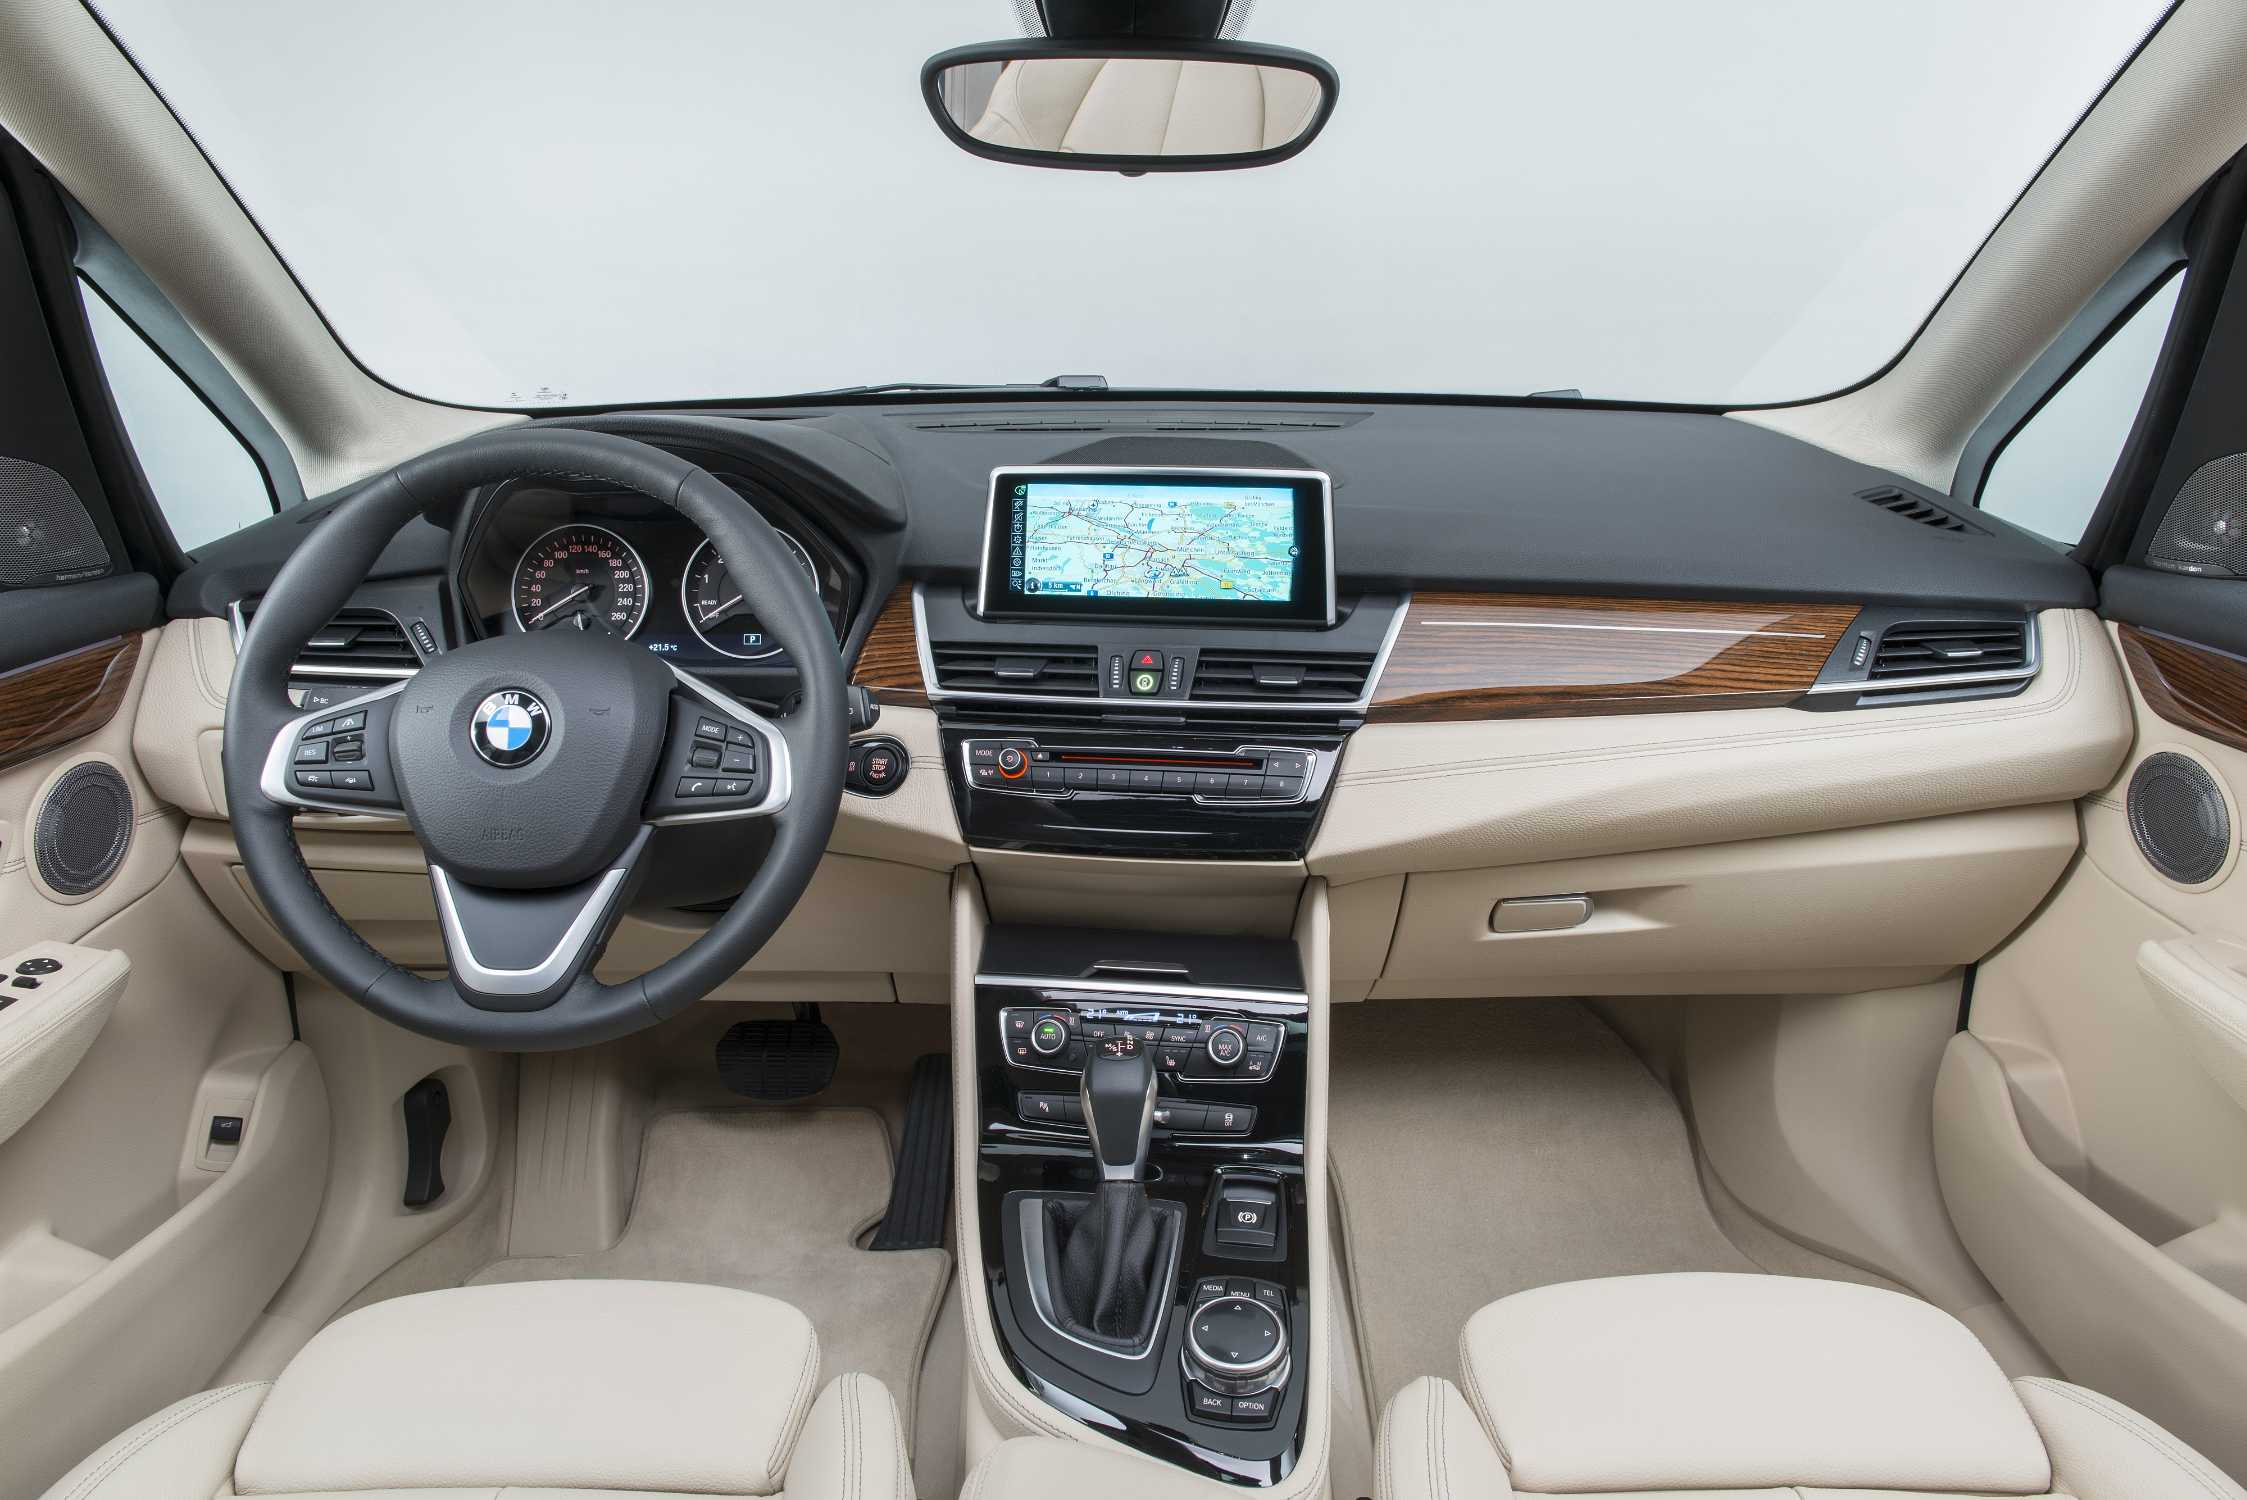 The New 2 Series Active Tourer Interior 02 2014